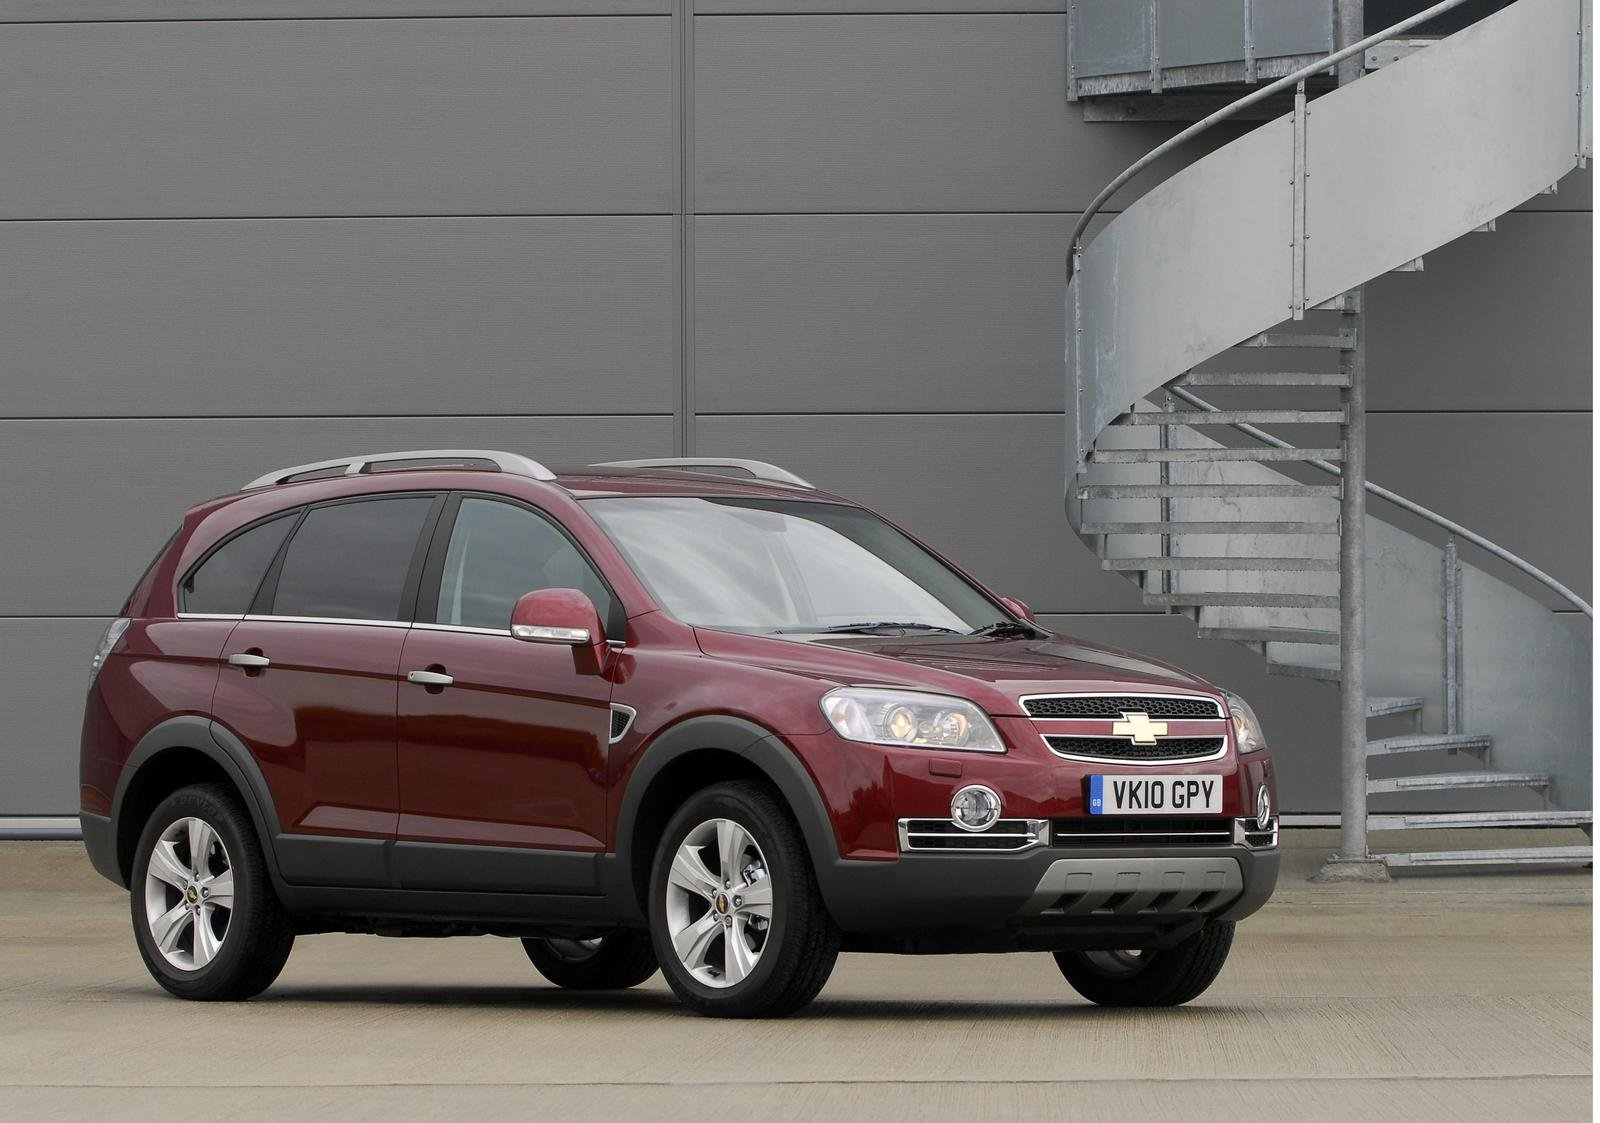 2010 Chevrolet Captiva Ltz Review Top Speed